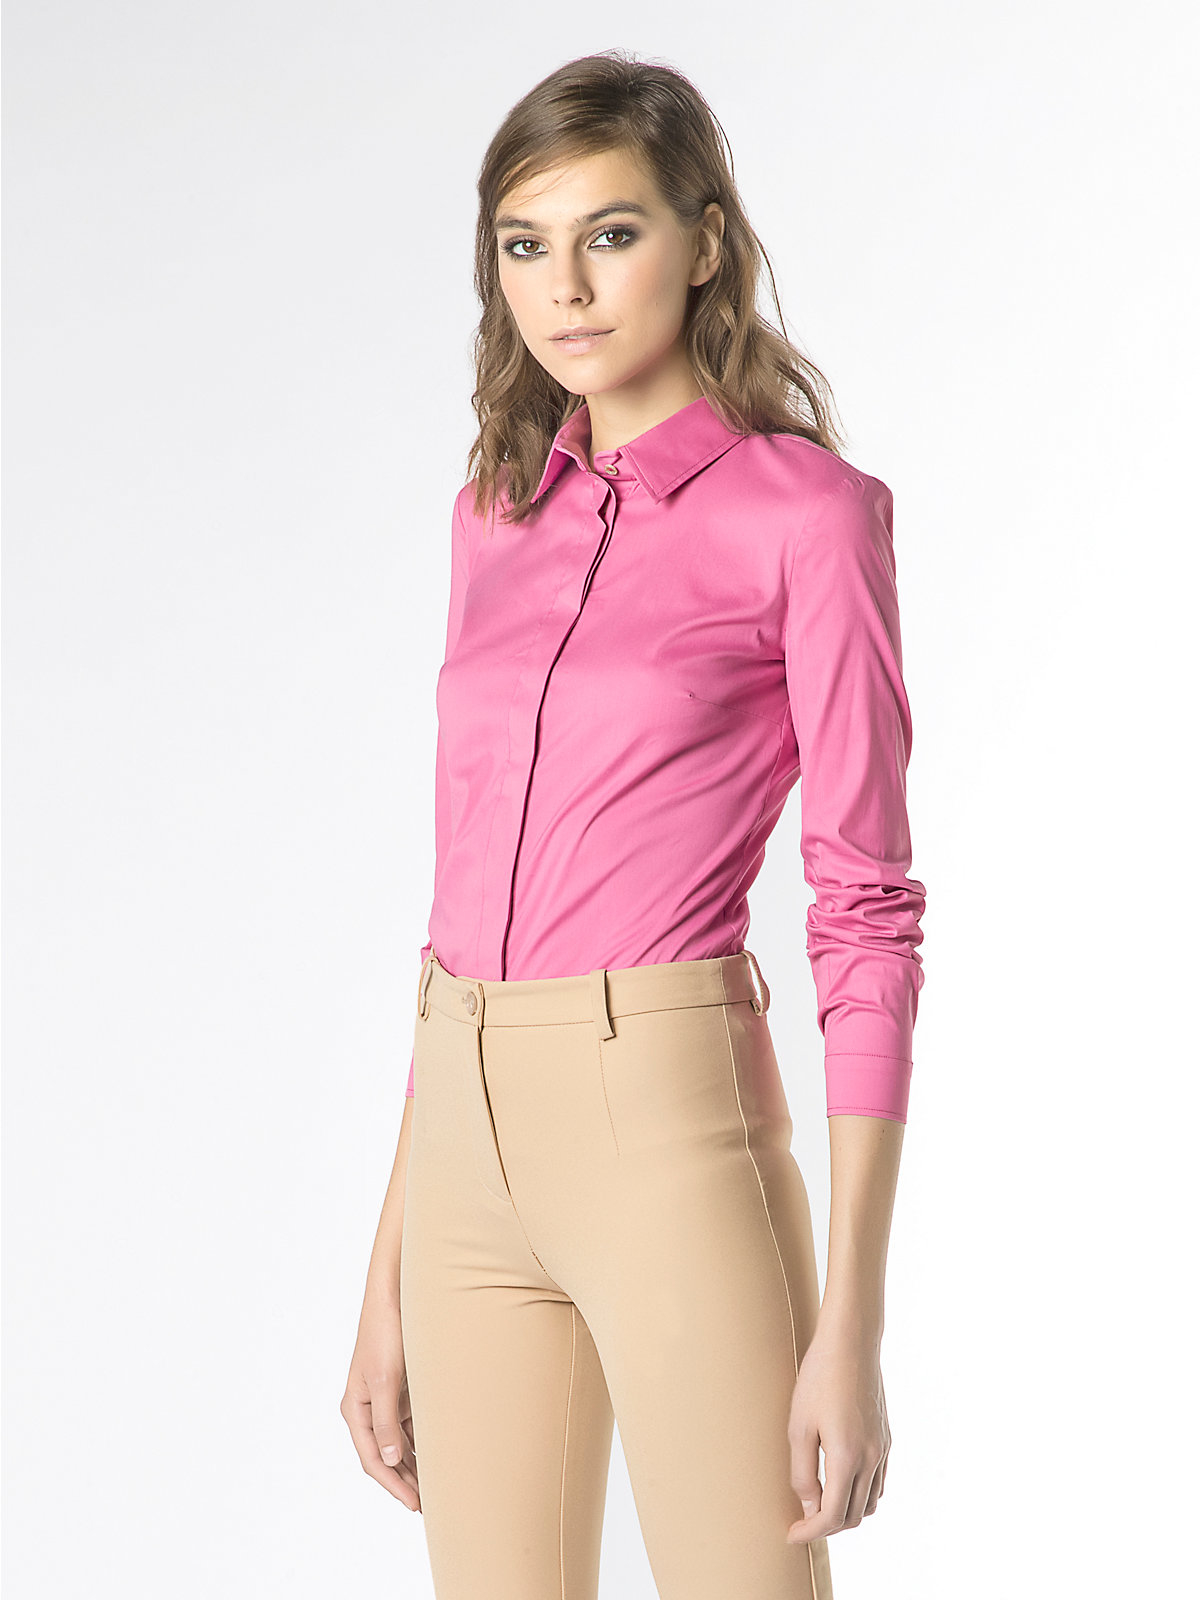 patrizia pepe body slim fit shirt in stretch cotton poplin in pink wild pink lyst. Black Bedroom Furniture Sets. Home Design Ideas